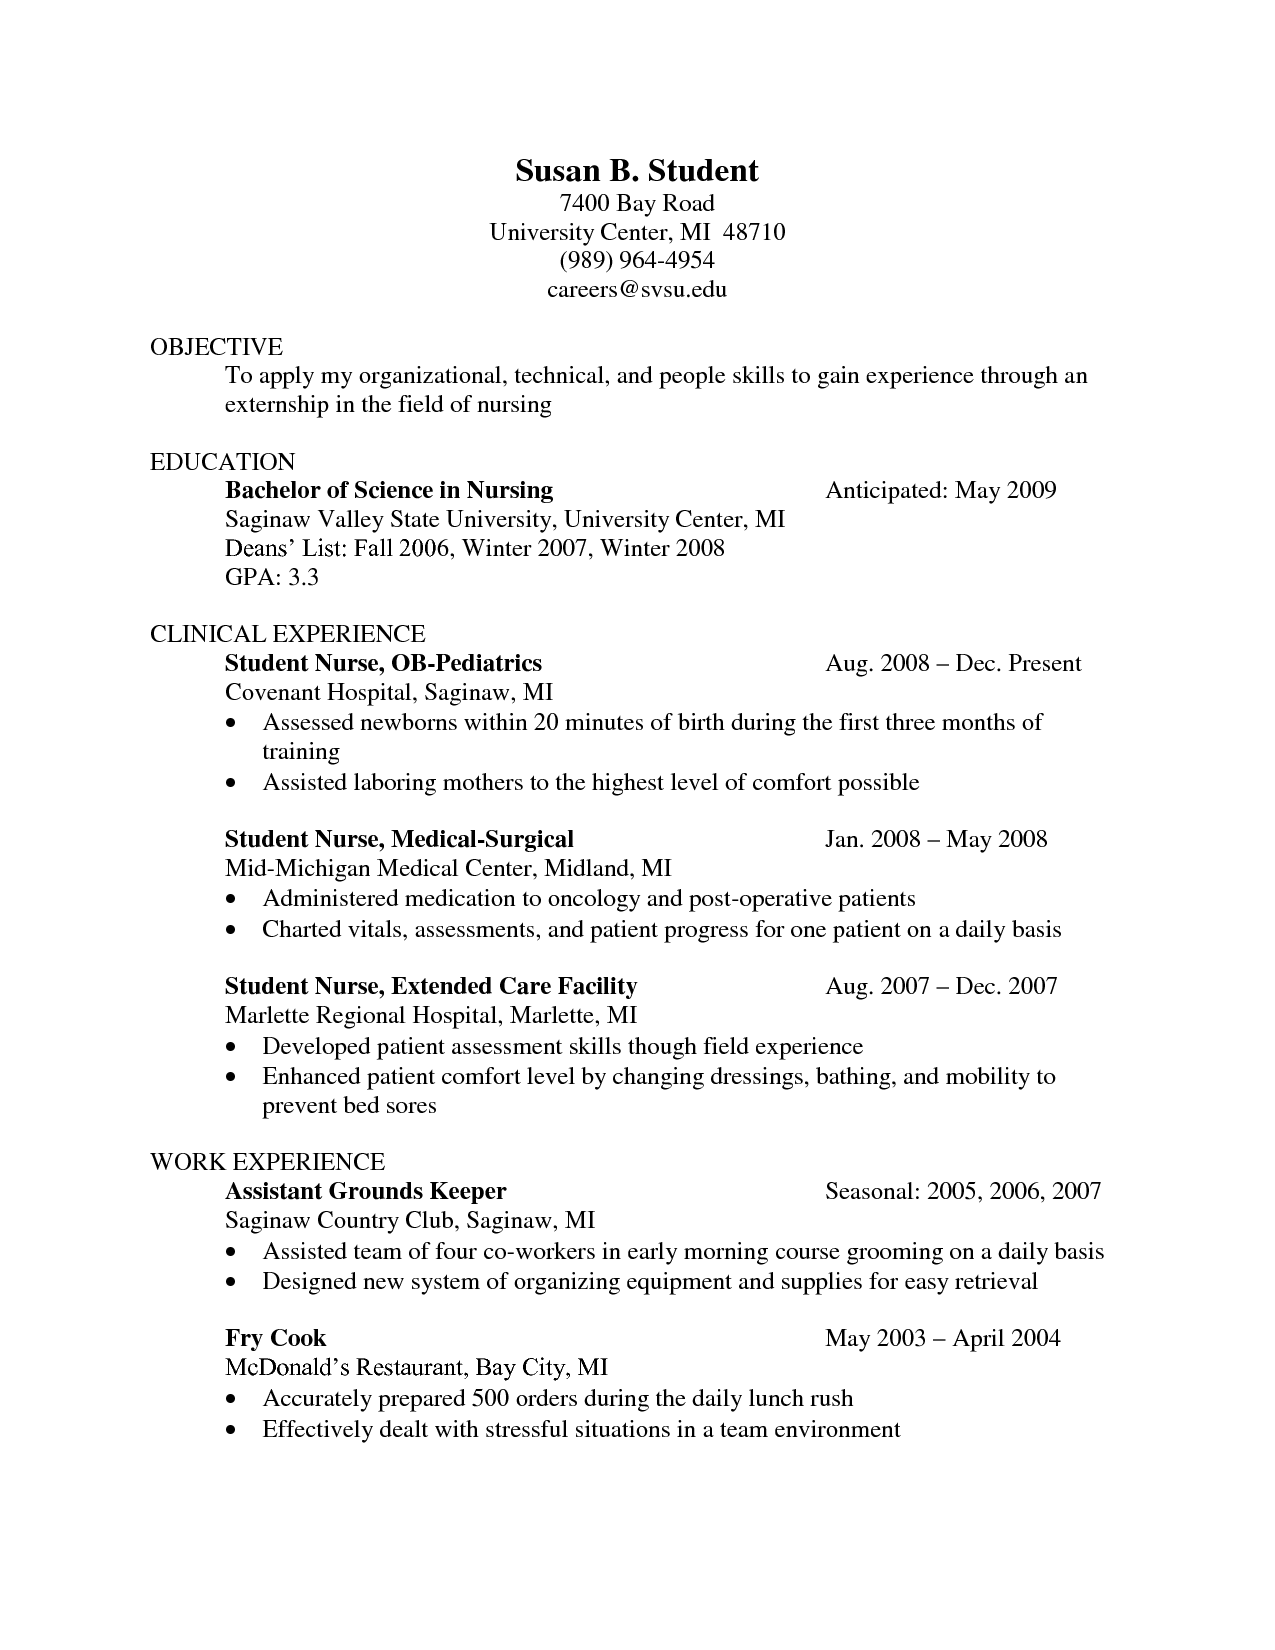 Resume Templates For Nursing Students Oncology Nurse Resume Templates  Httpwwwresumecareer